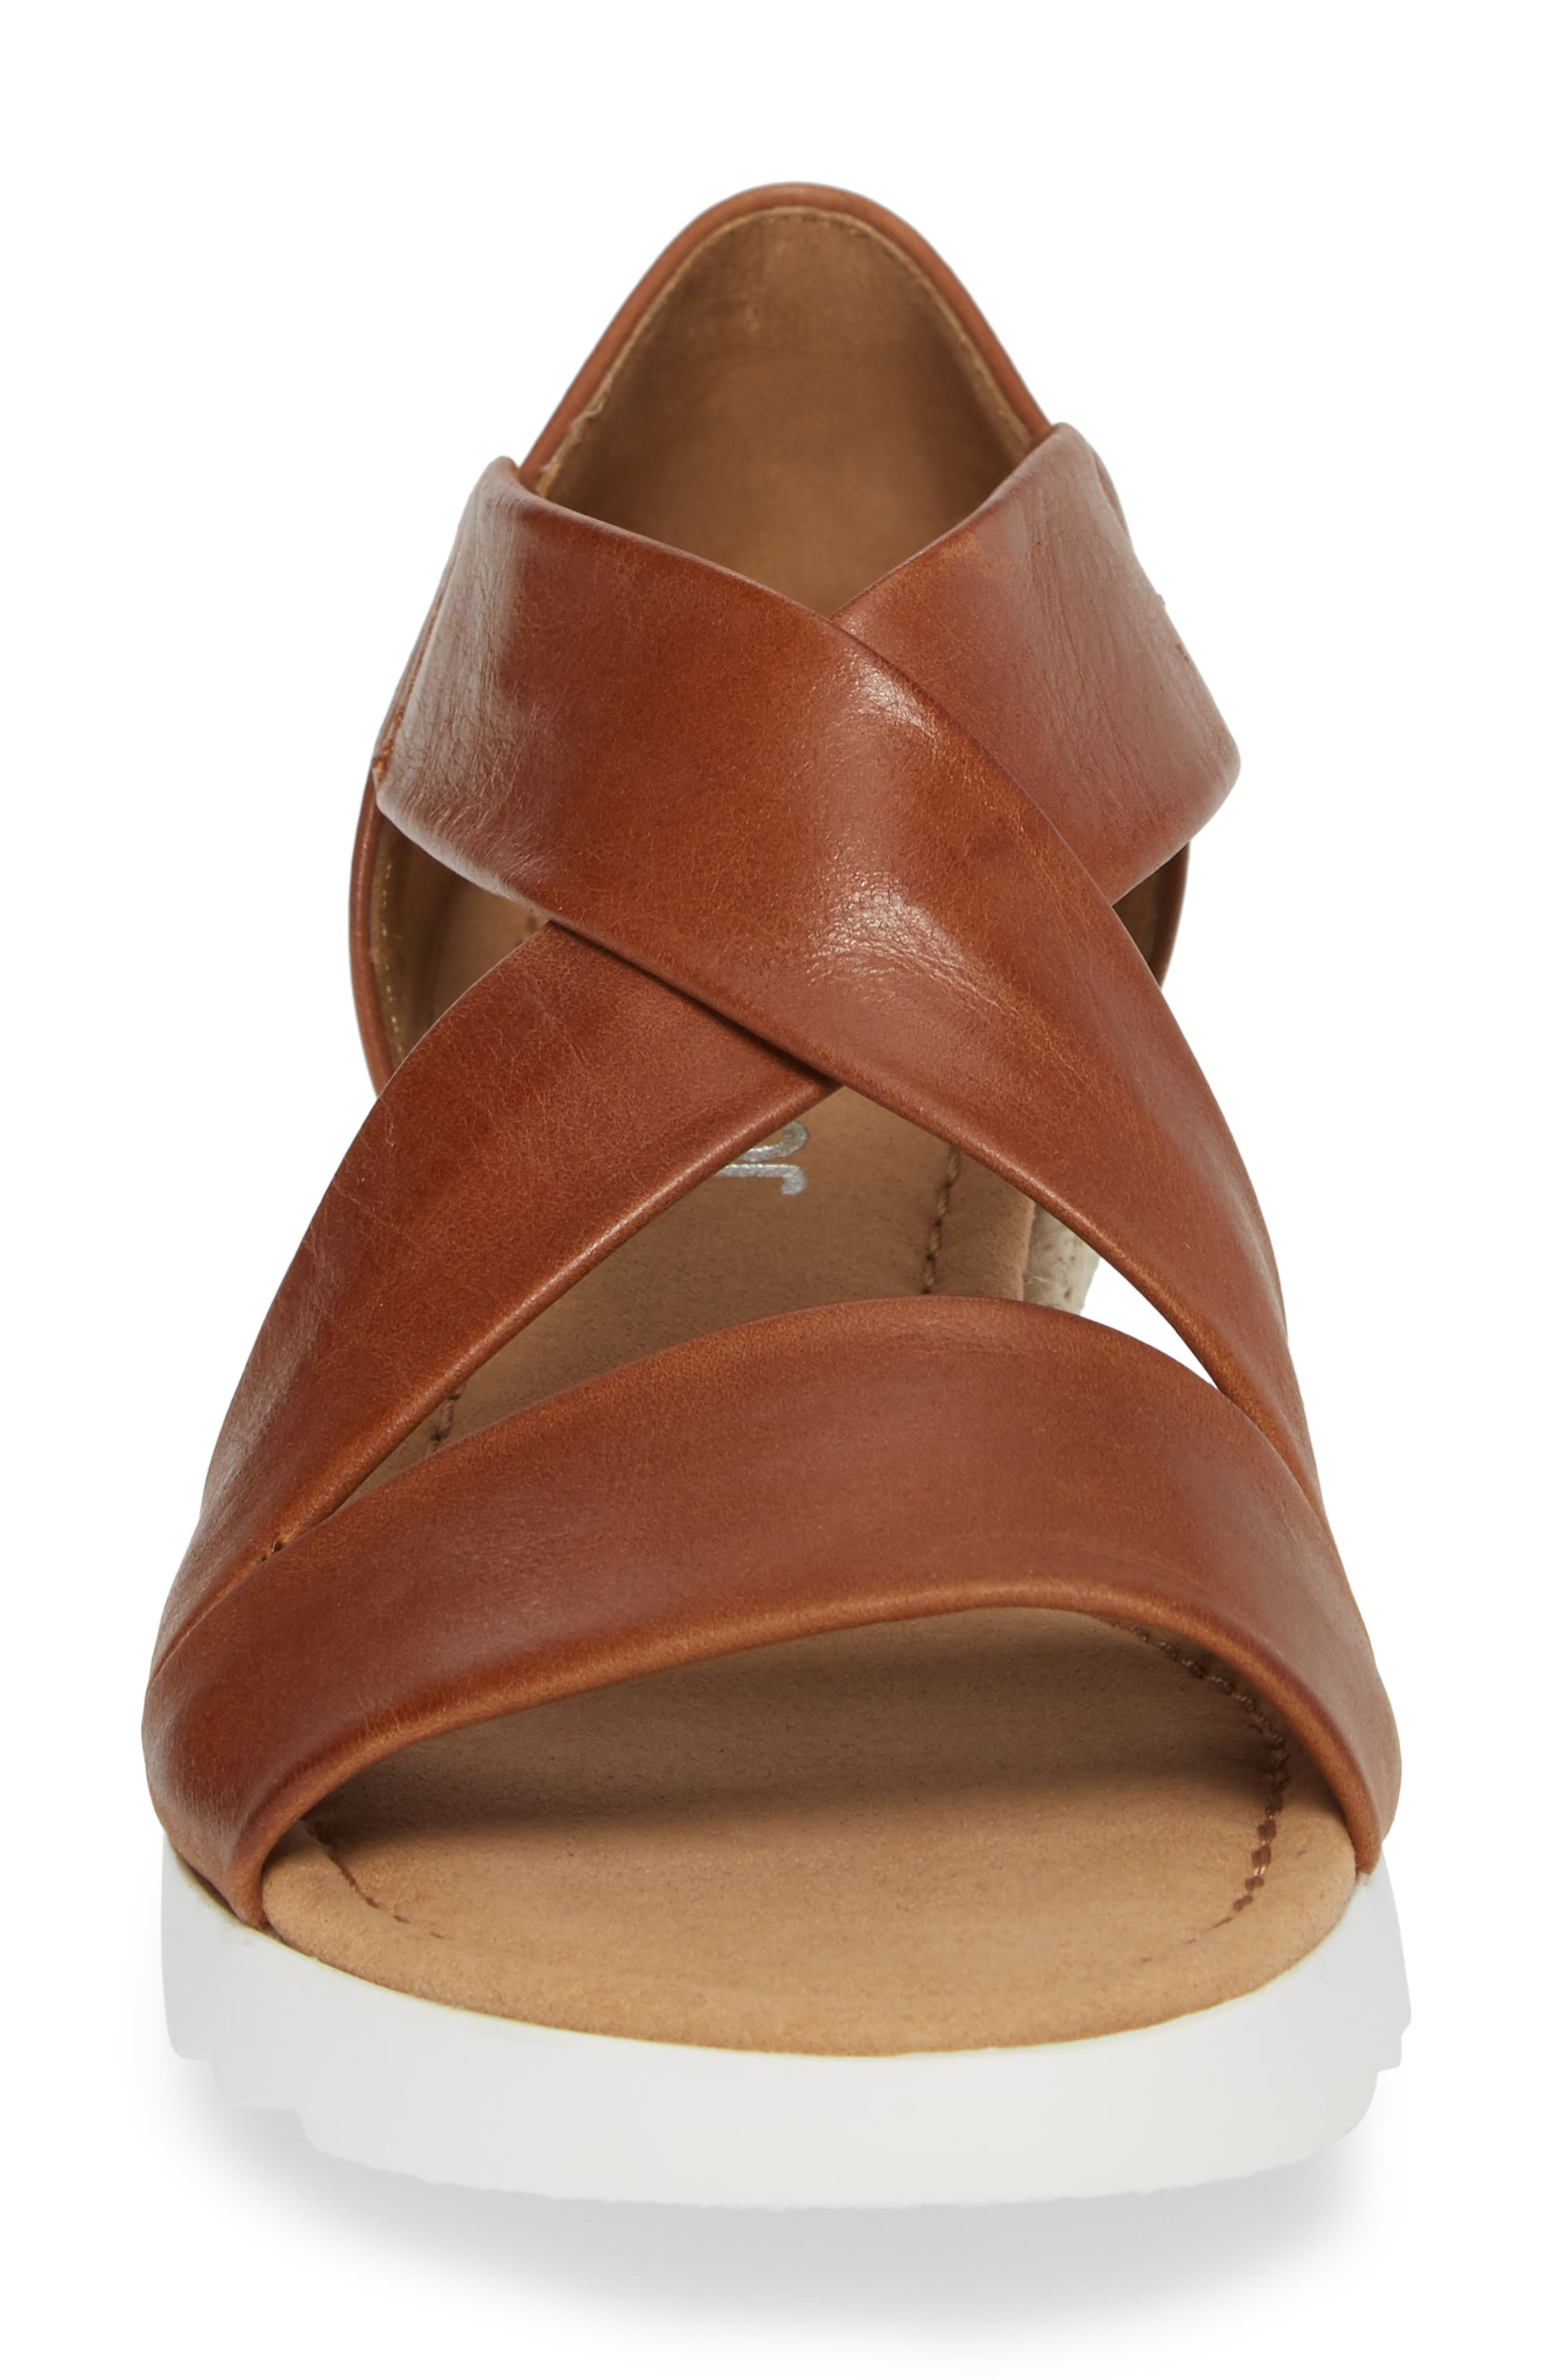 Cross Strap Sandal,                             Alternate thumbnail 4, color,                             BROWN LEATHER